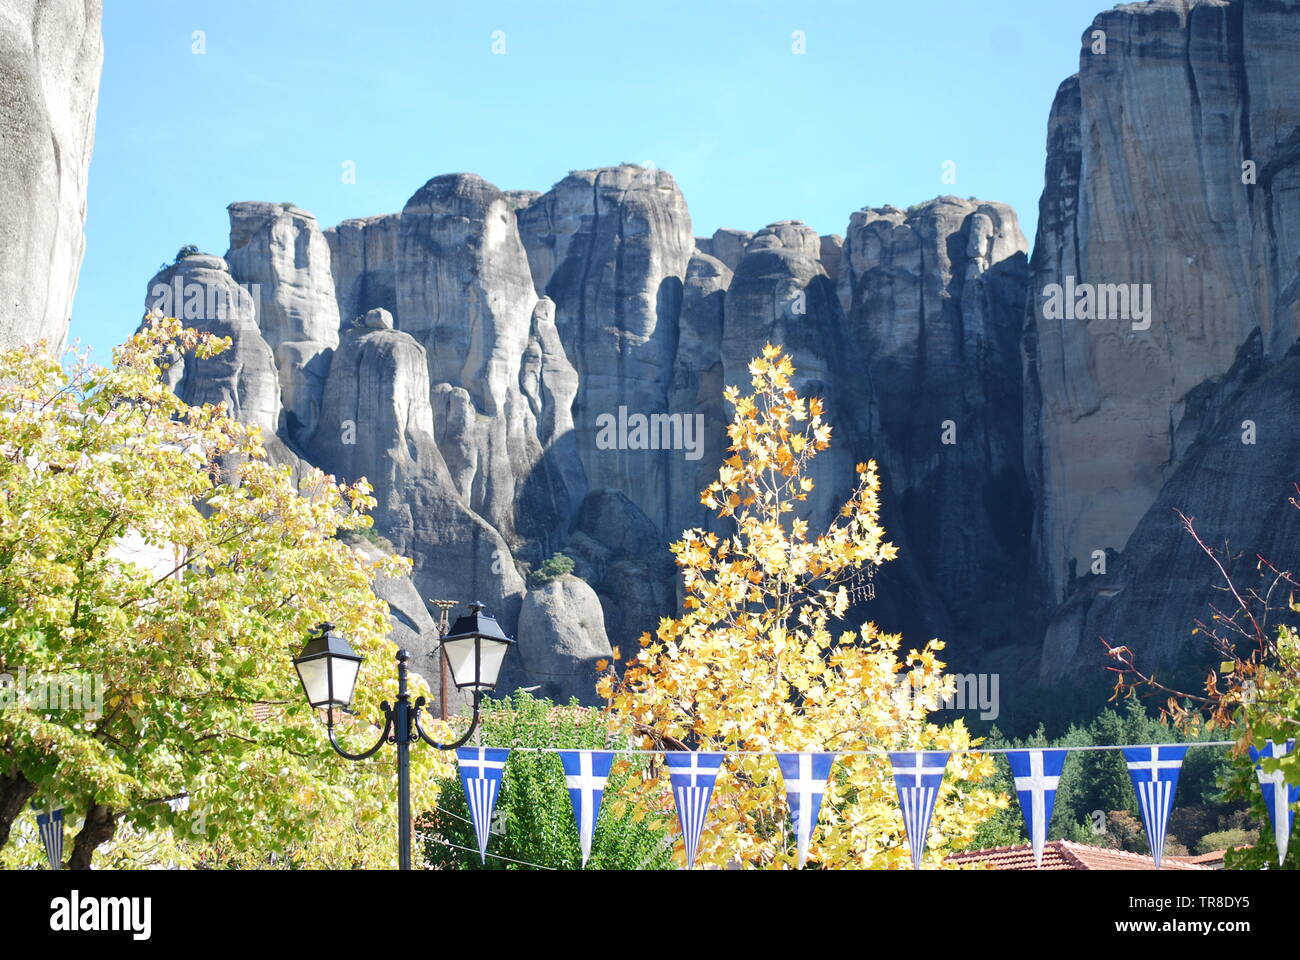 Meteora - rock formation in central Greece with six monasteries built on top - Stock Image